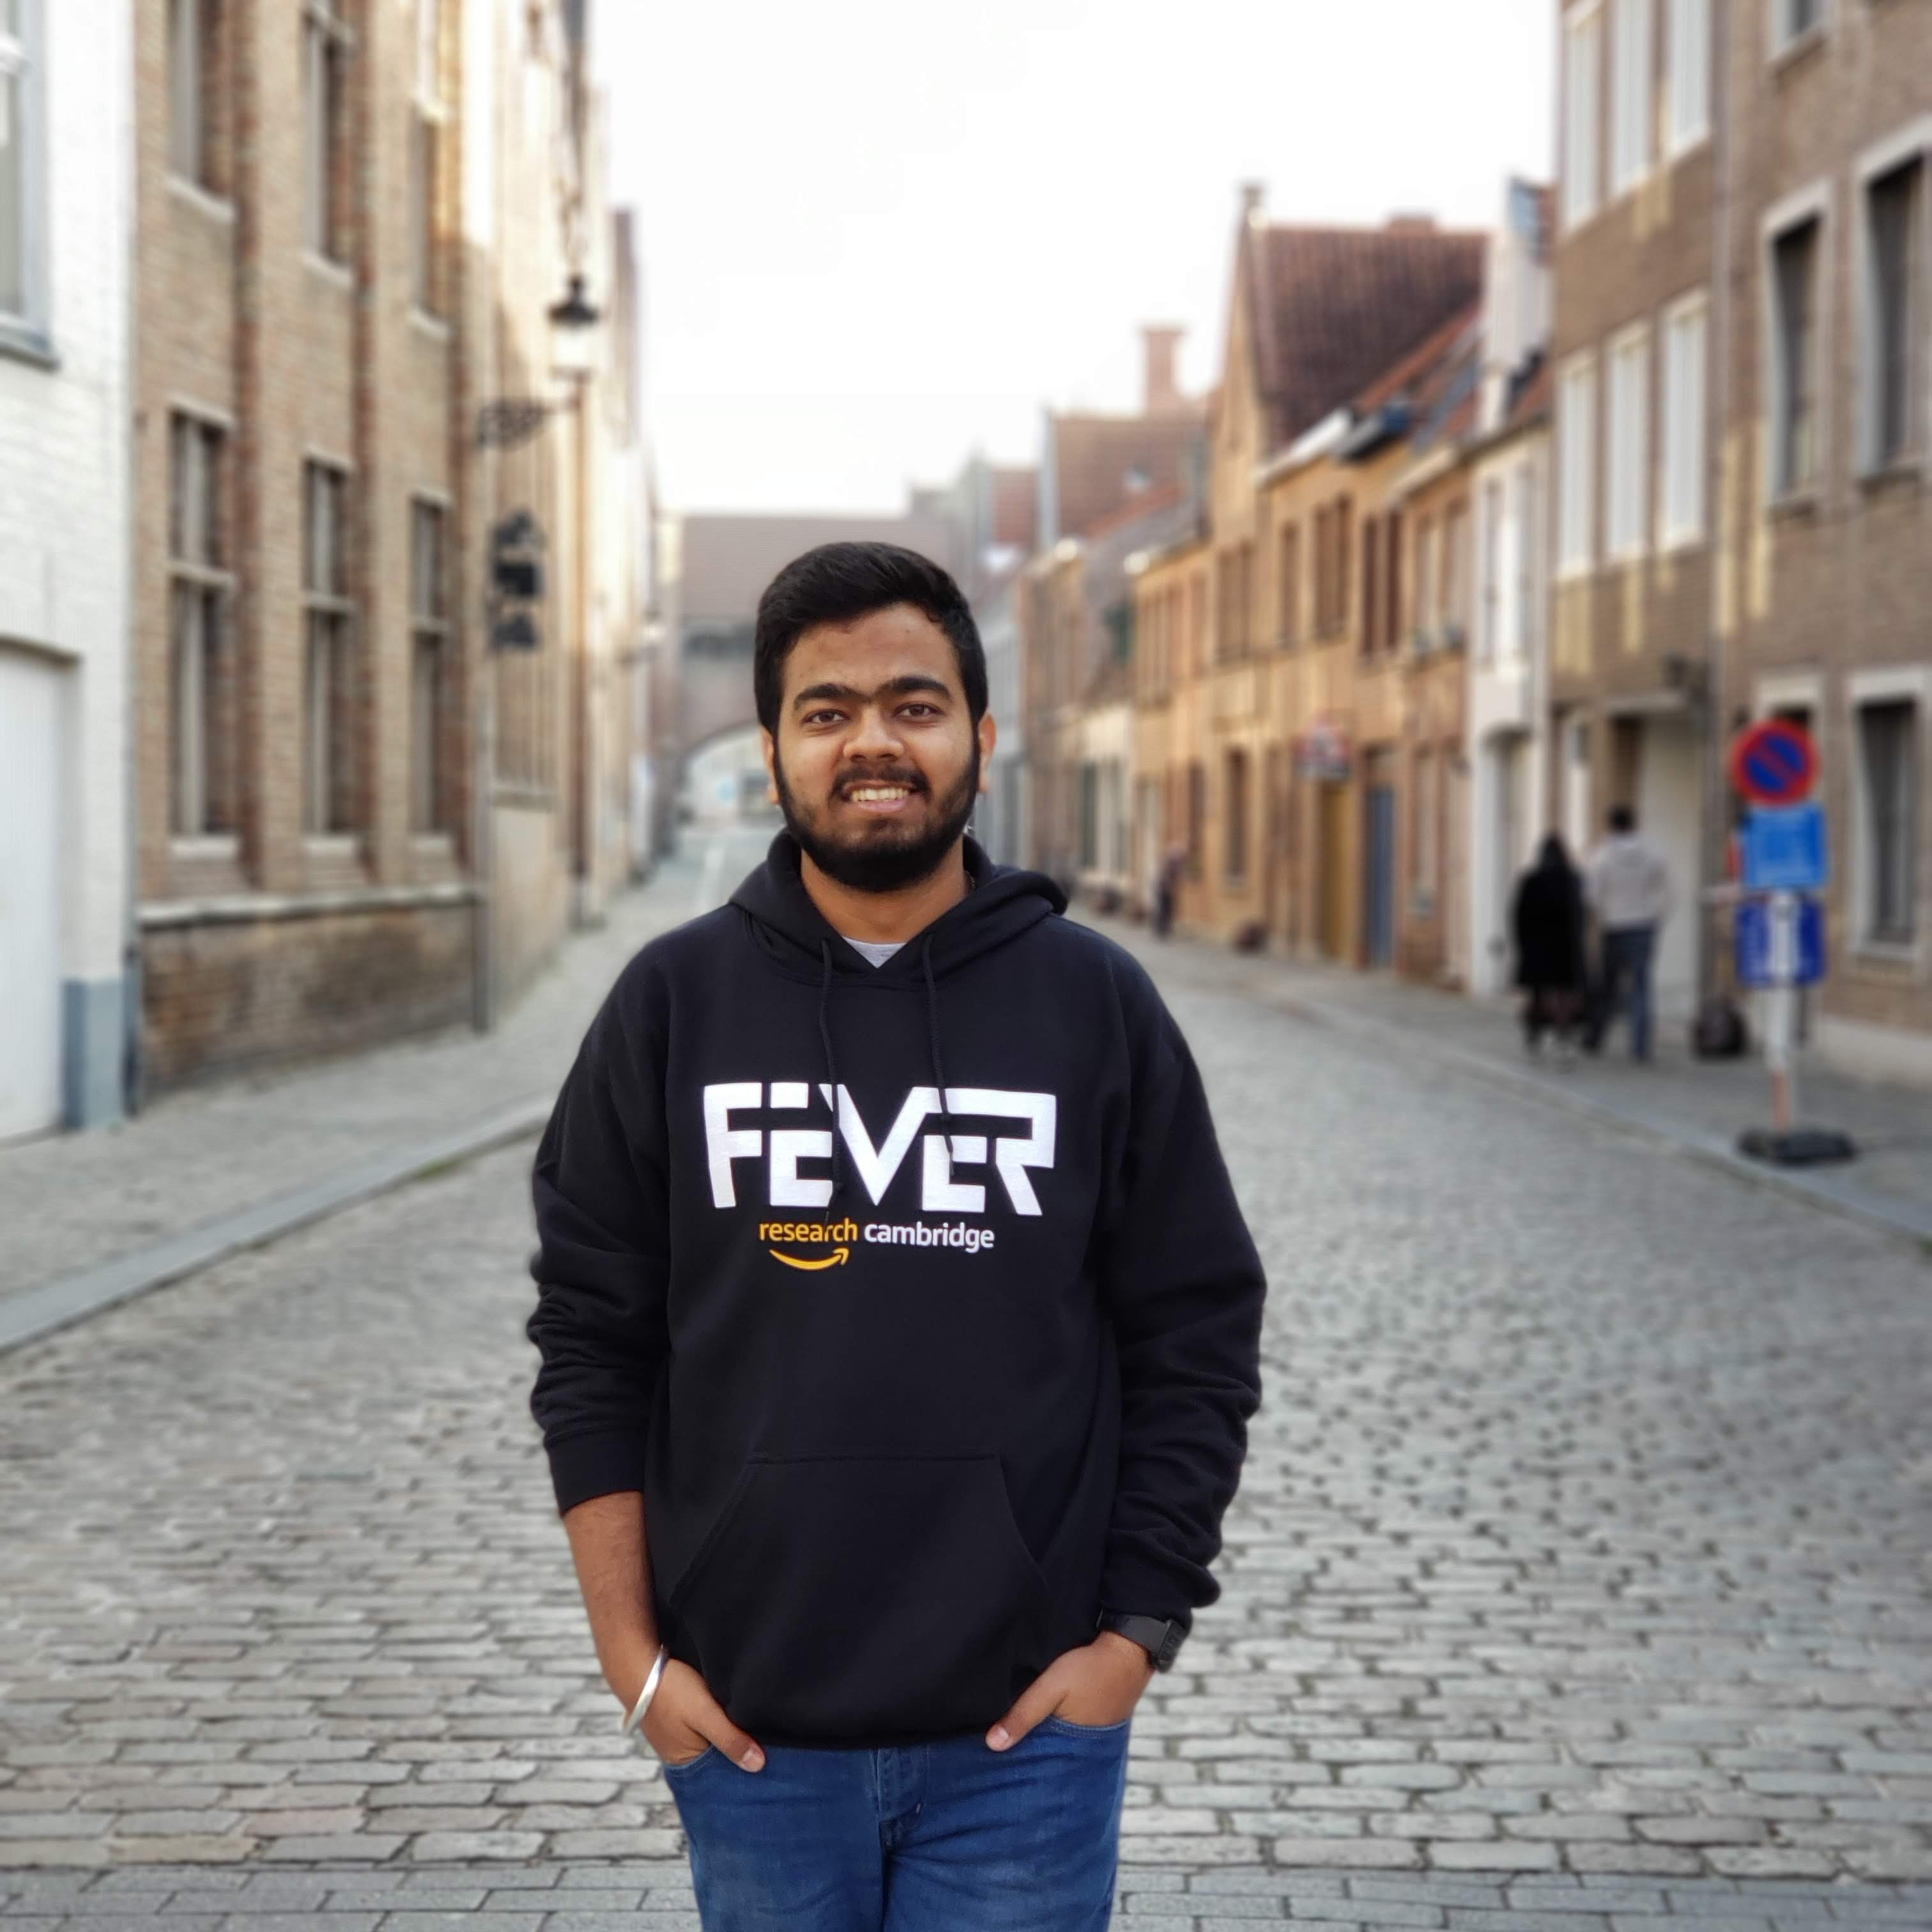 Divyansh stands smiling in front of buildings